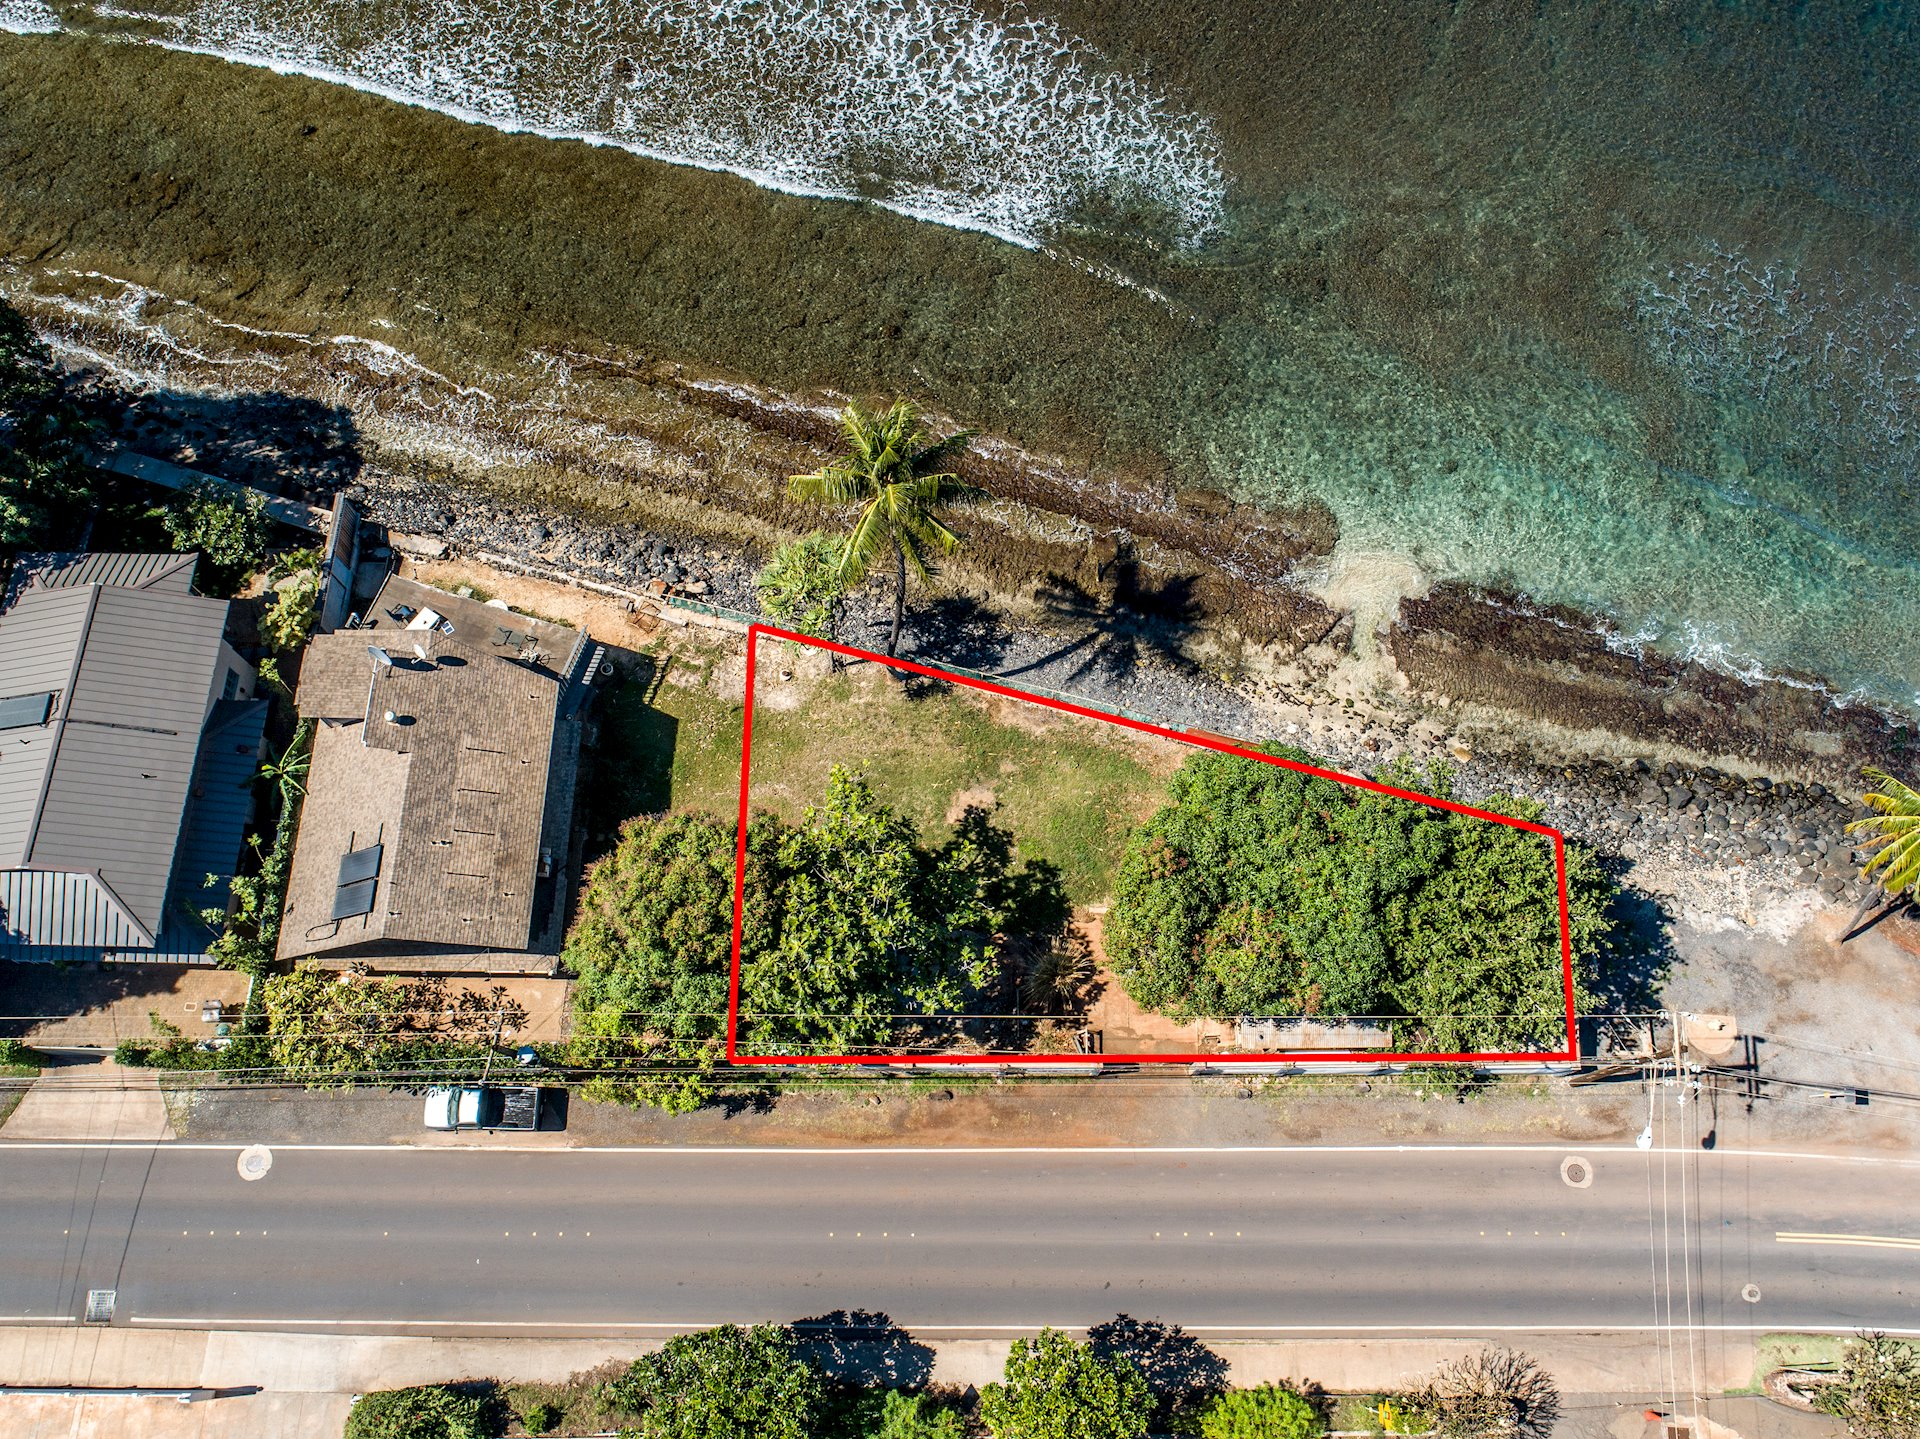 Stunning Ocean Front property with over 120ft****(confirm) of ocean frontage. Buyer and Buyer's agent to do their own due diligence. Actual property may differ from County records. Seller is also selling adjacent 1441 Front St parcel which is 2,700+ sq ft (MLS#381765).